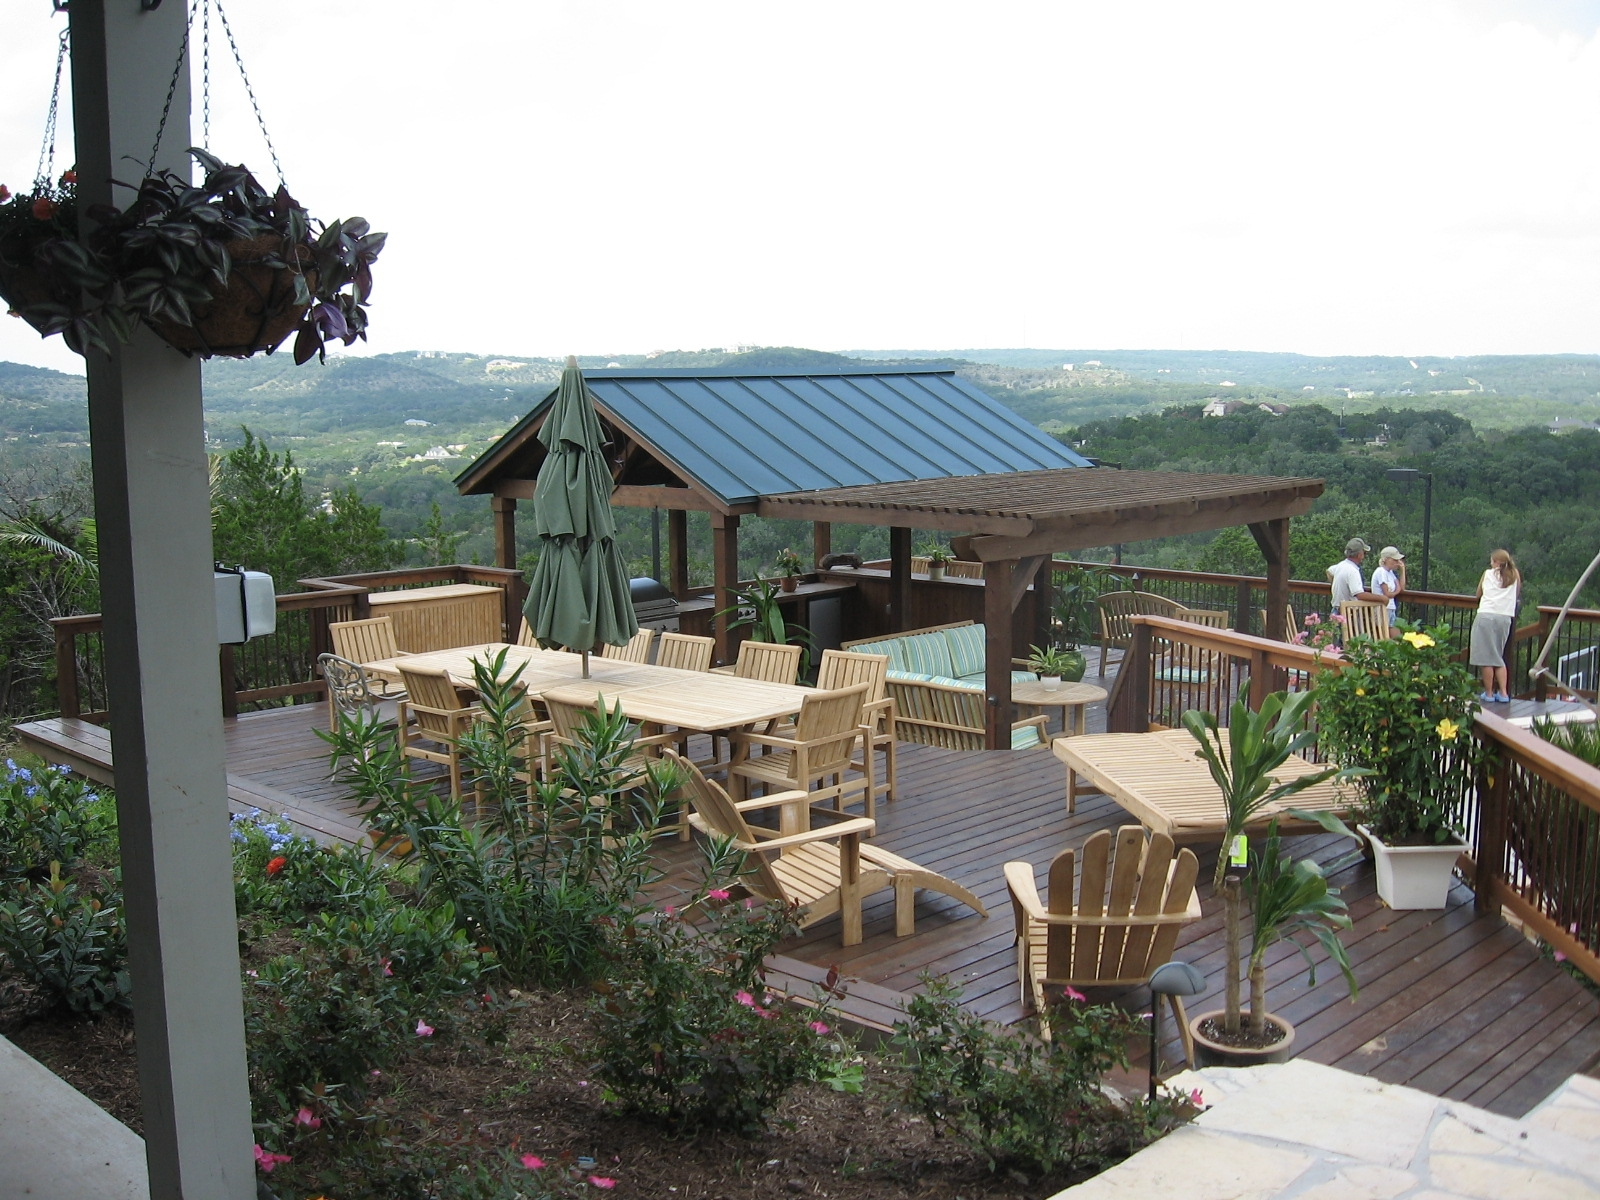 Covered Outdoor Kitchen - Braundera.com